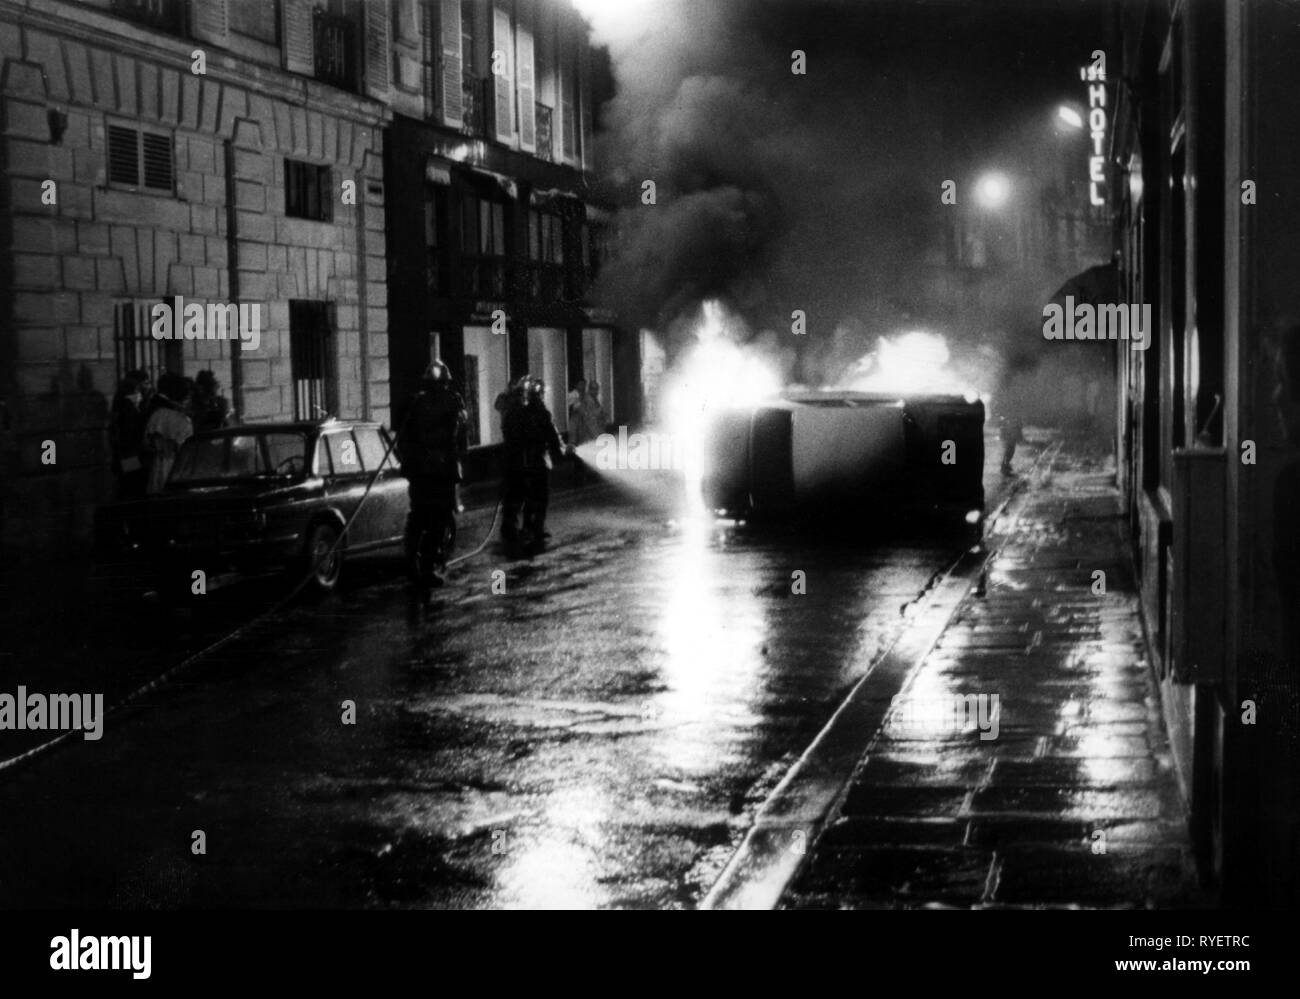 demonstration, France, 1968, student uprisings, in the Quartier Latin, fire brigade is dousing a burning car, 7.5.1968, Additional-Rights-Clearance-Info-Not-Available - Stock Image